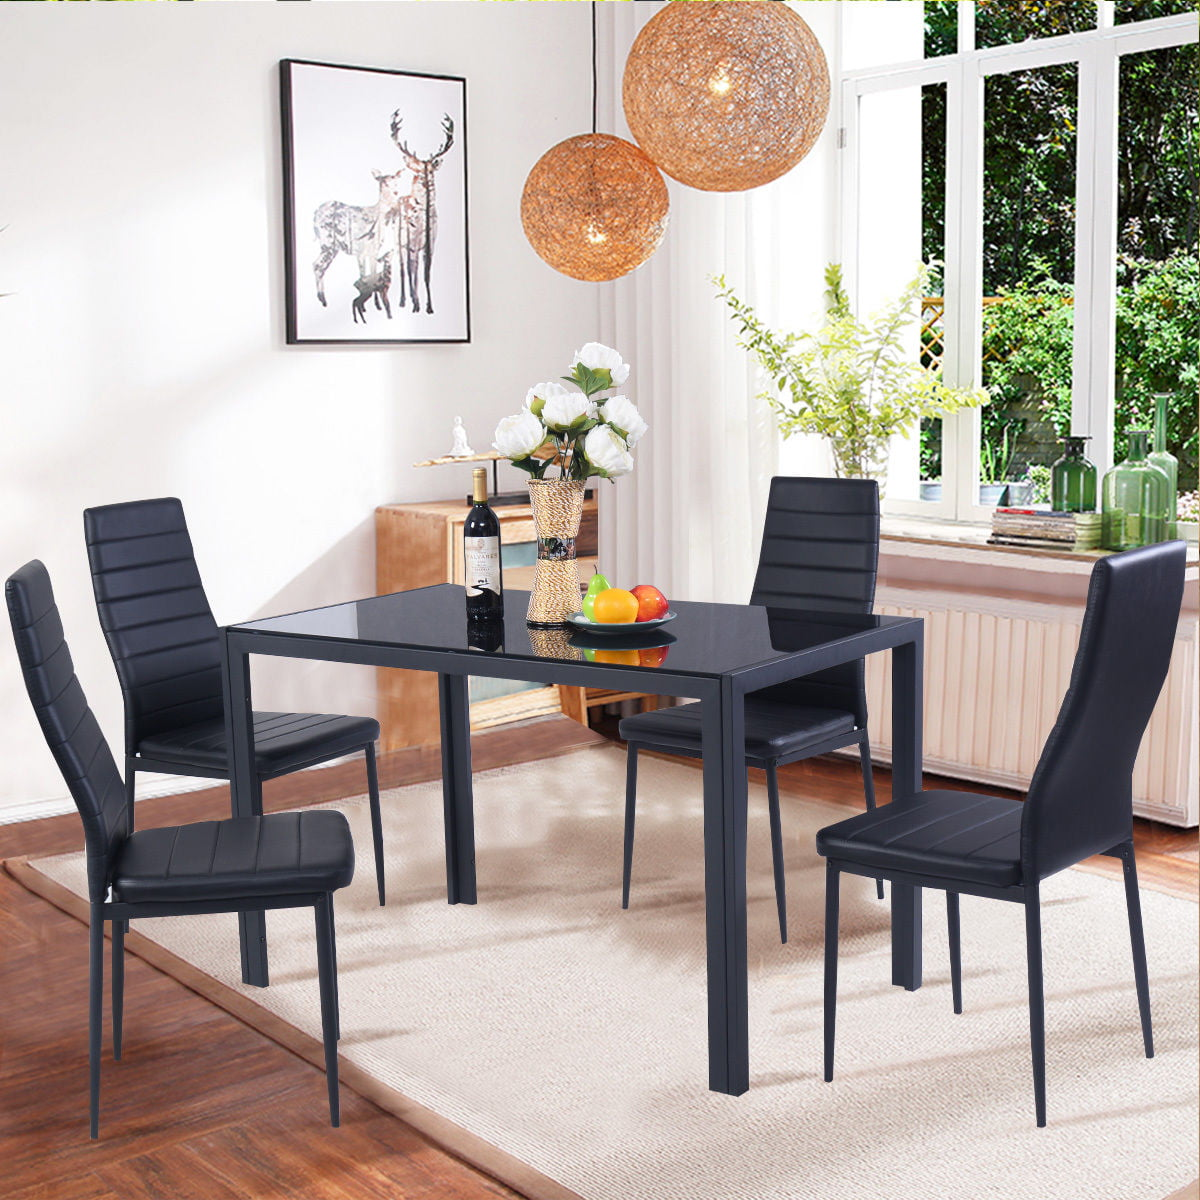 High Quality Costway 5 Piece Kitchen Dining Set Glass Metal Table And 4 Chairs Breakfast  Furniture   Walmart.com